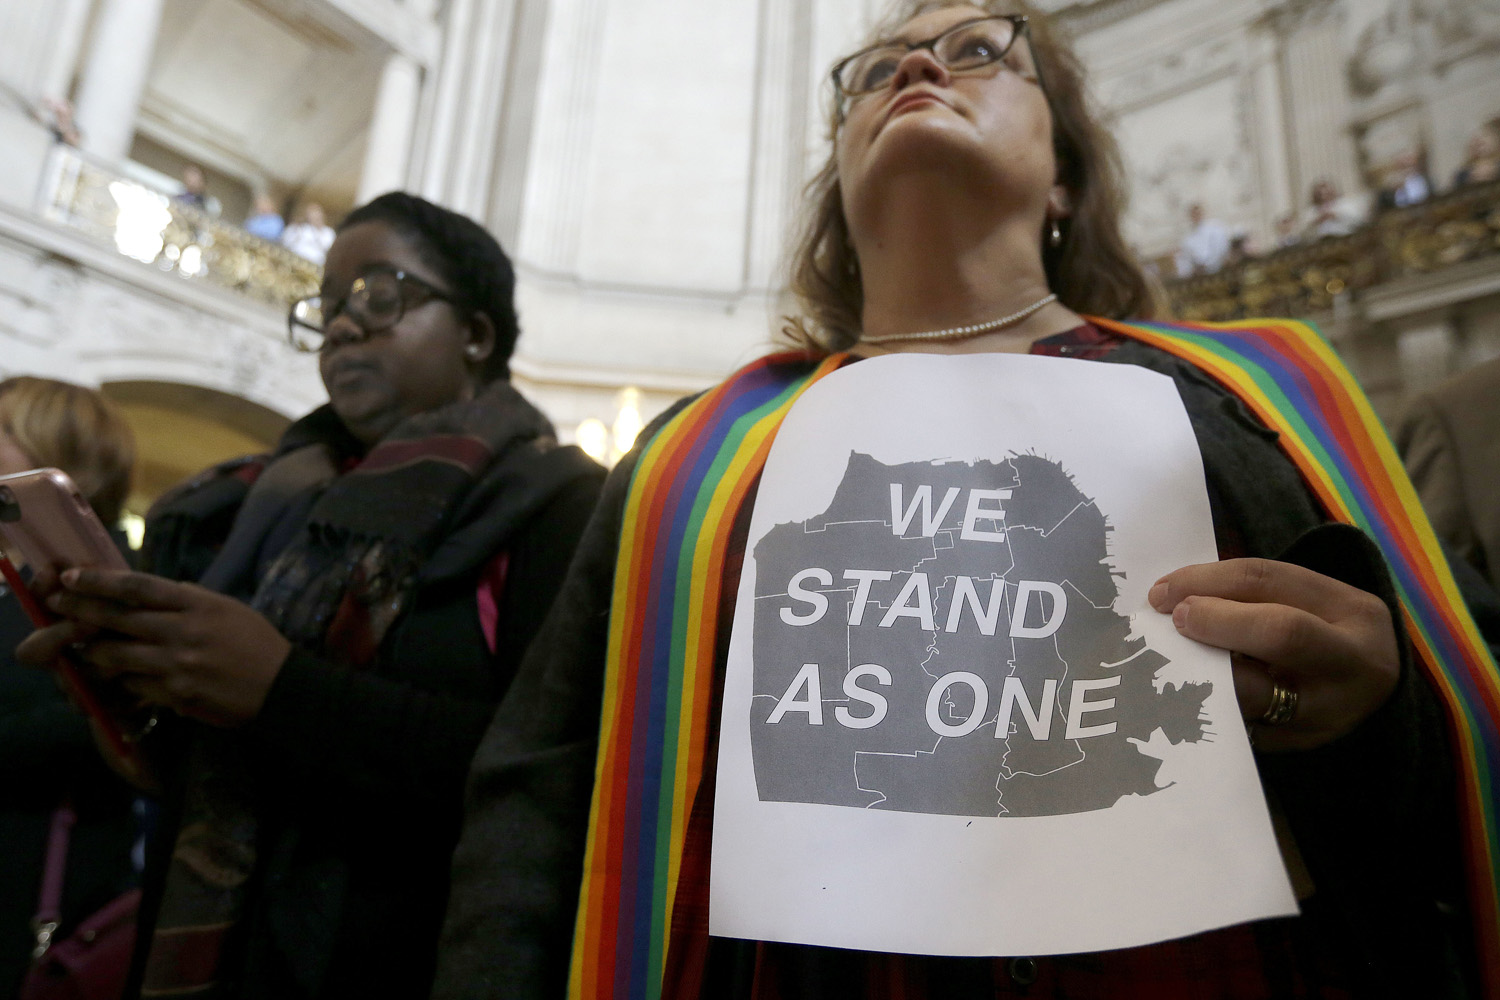 In this file photo, The Rev. Annie Steinberg-Behrman, right, provisional pastor with Metropolitan Community Church, holds a sign while listening to speakers at a meeting at City Hall in San Francisco by city leaders and community activists to reaffirm the city's commitment to being a sanctuary city. (Jeff Chiu/AP)